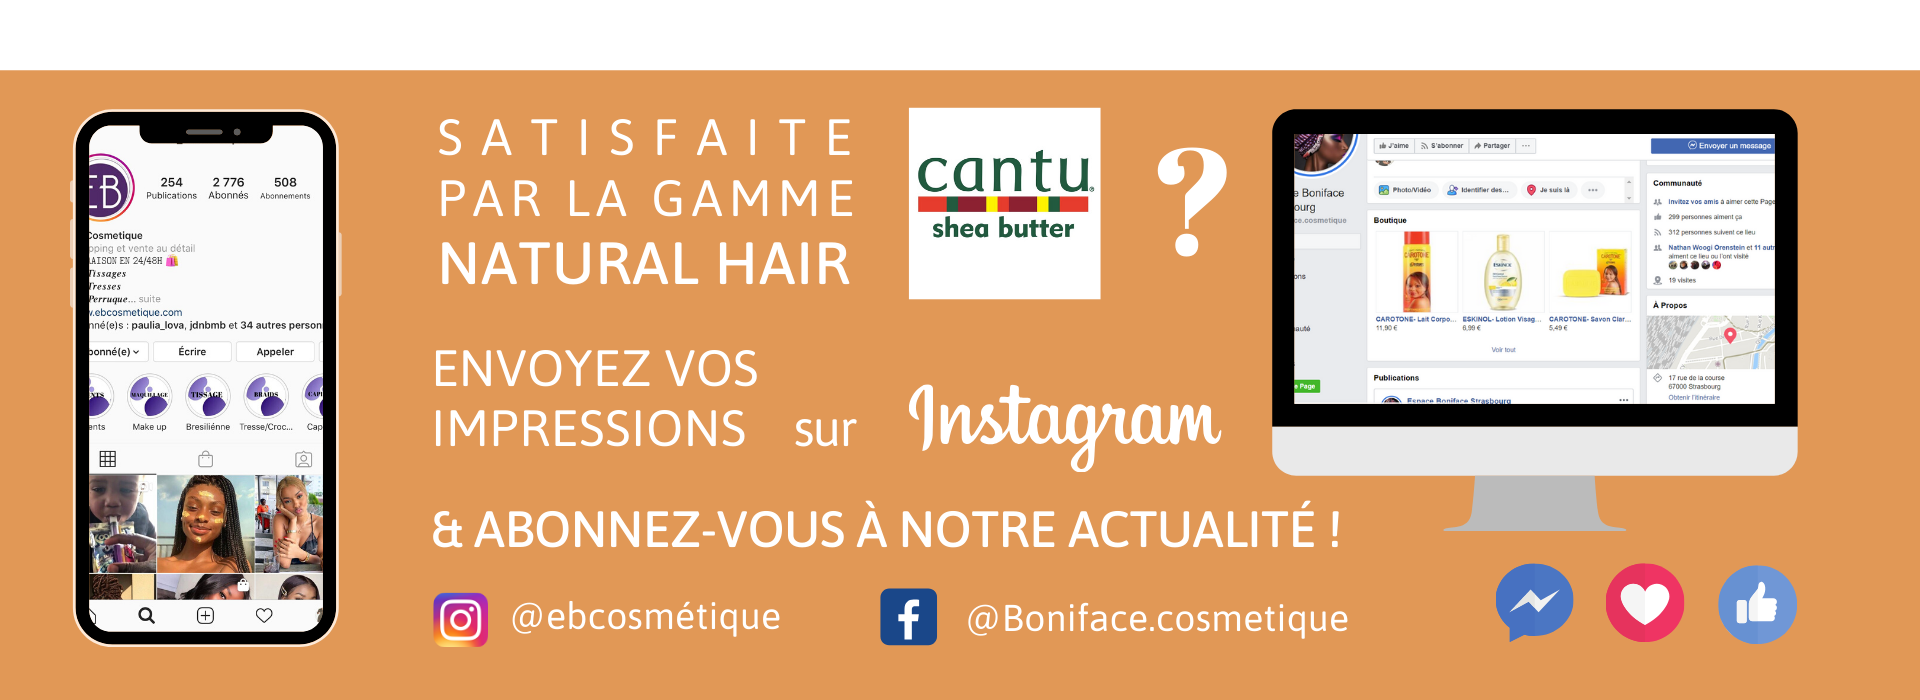 fiche produit ebcosmetique cantu shea butter natural hair Wave Whip Curling Mousse routine capillaire afro bouclé facebook instagram